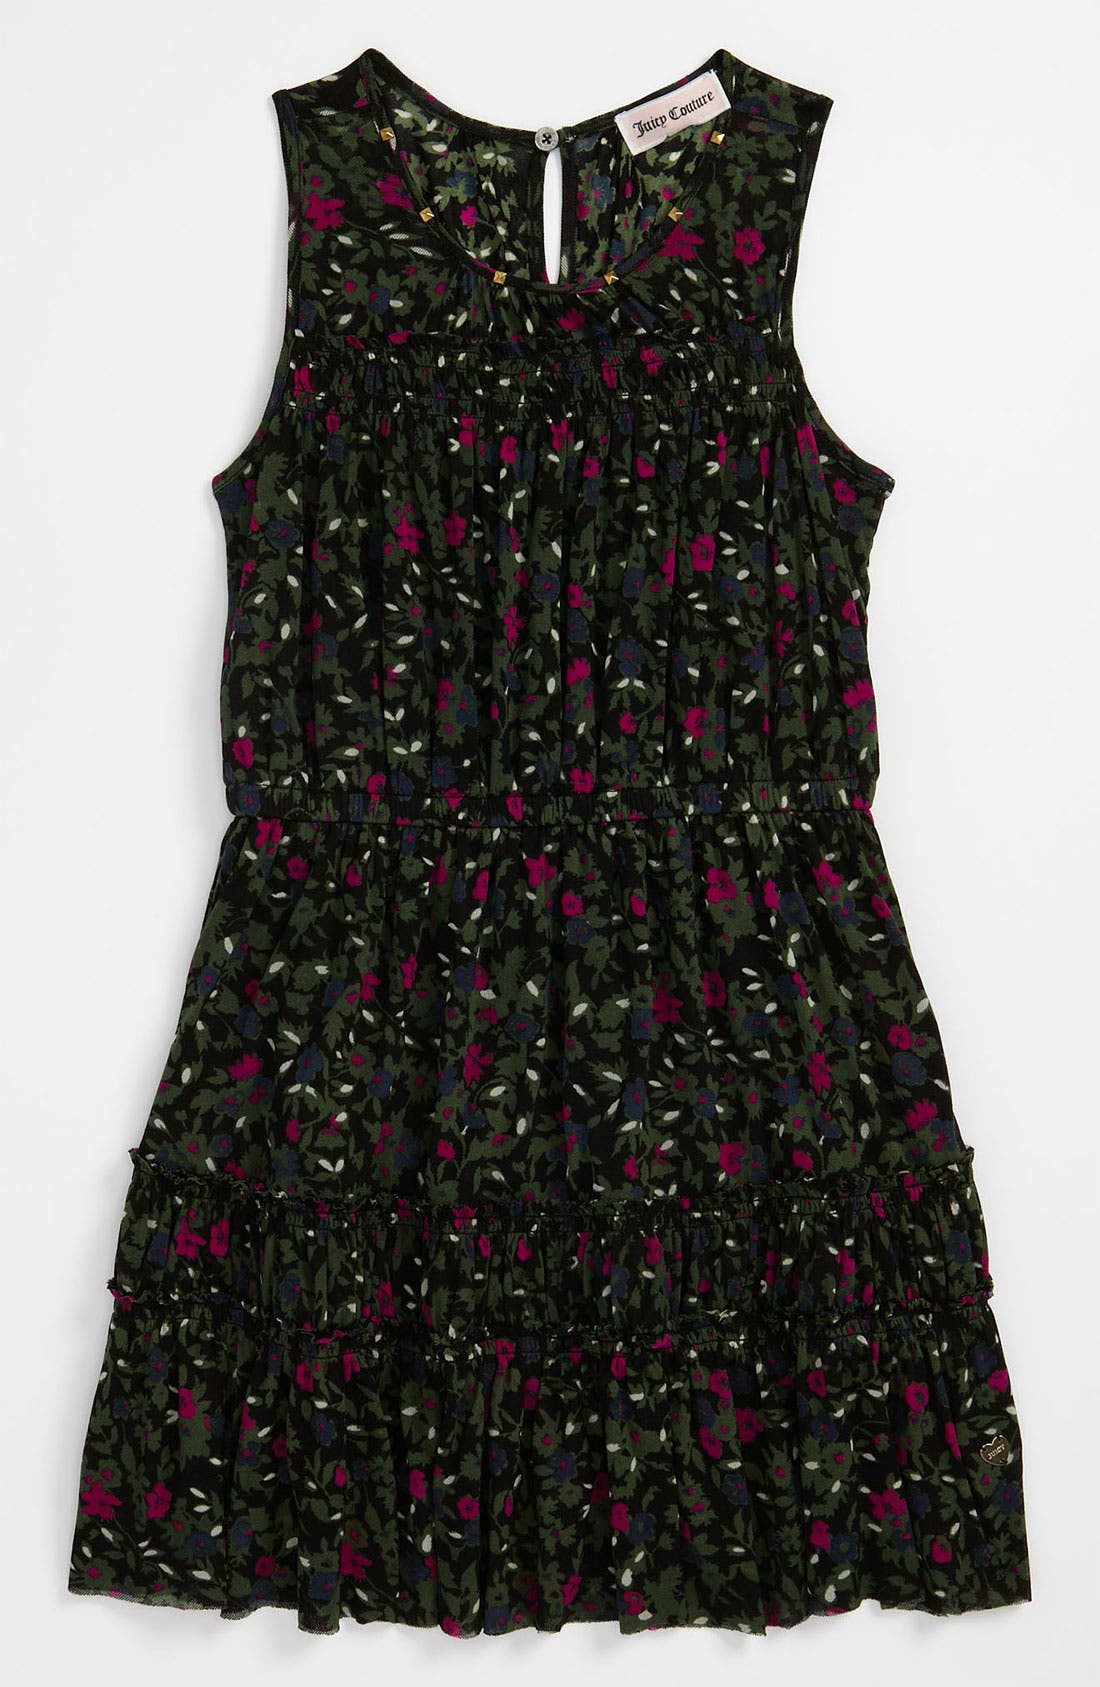 Alternate Image 1 Selected - Juicy Couture 'Clareville' Printed Mesh Dress (Little Girls & Big Girls)